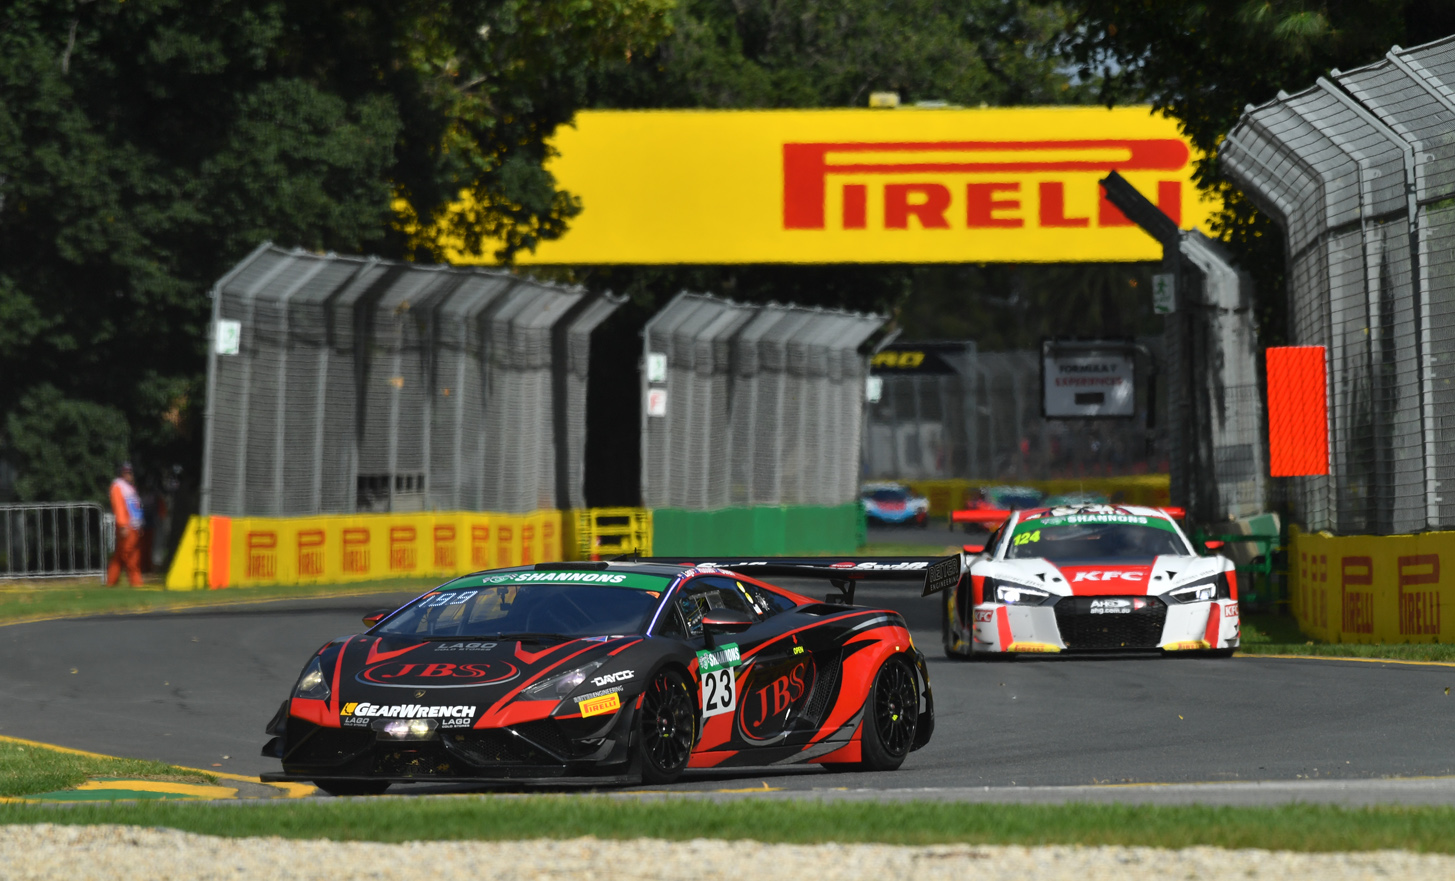 Commanding performace from Lago in Race 2 at Albert Park